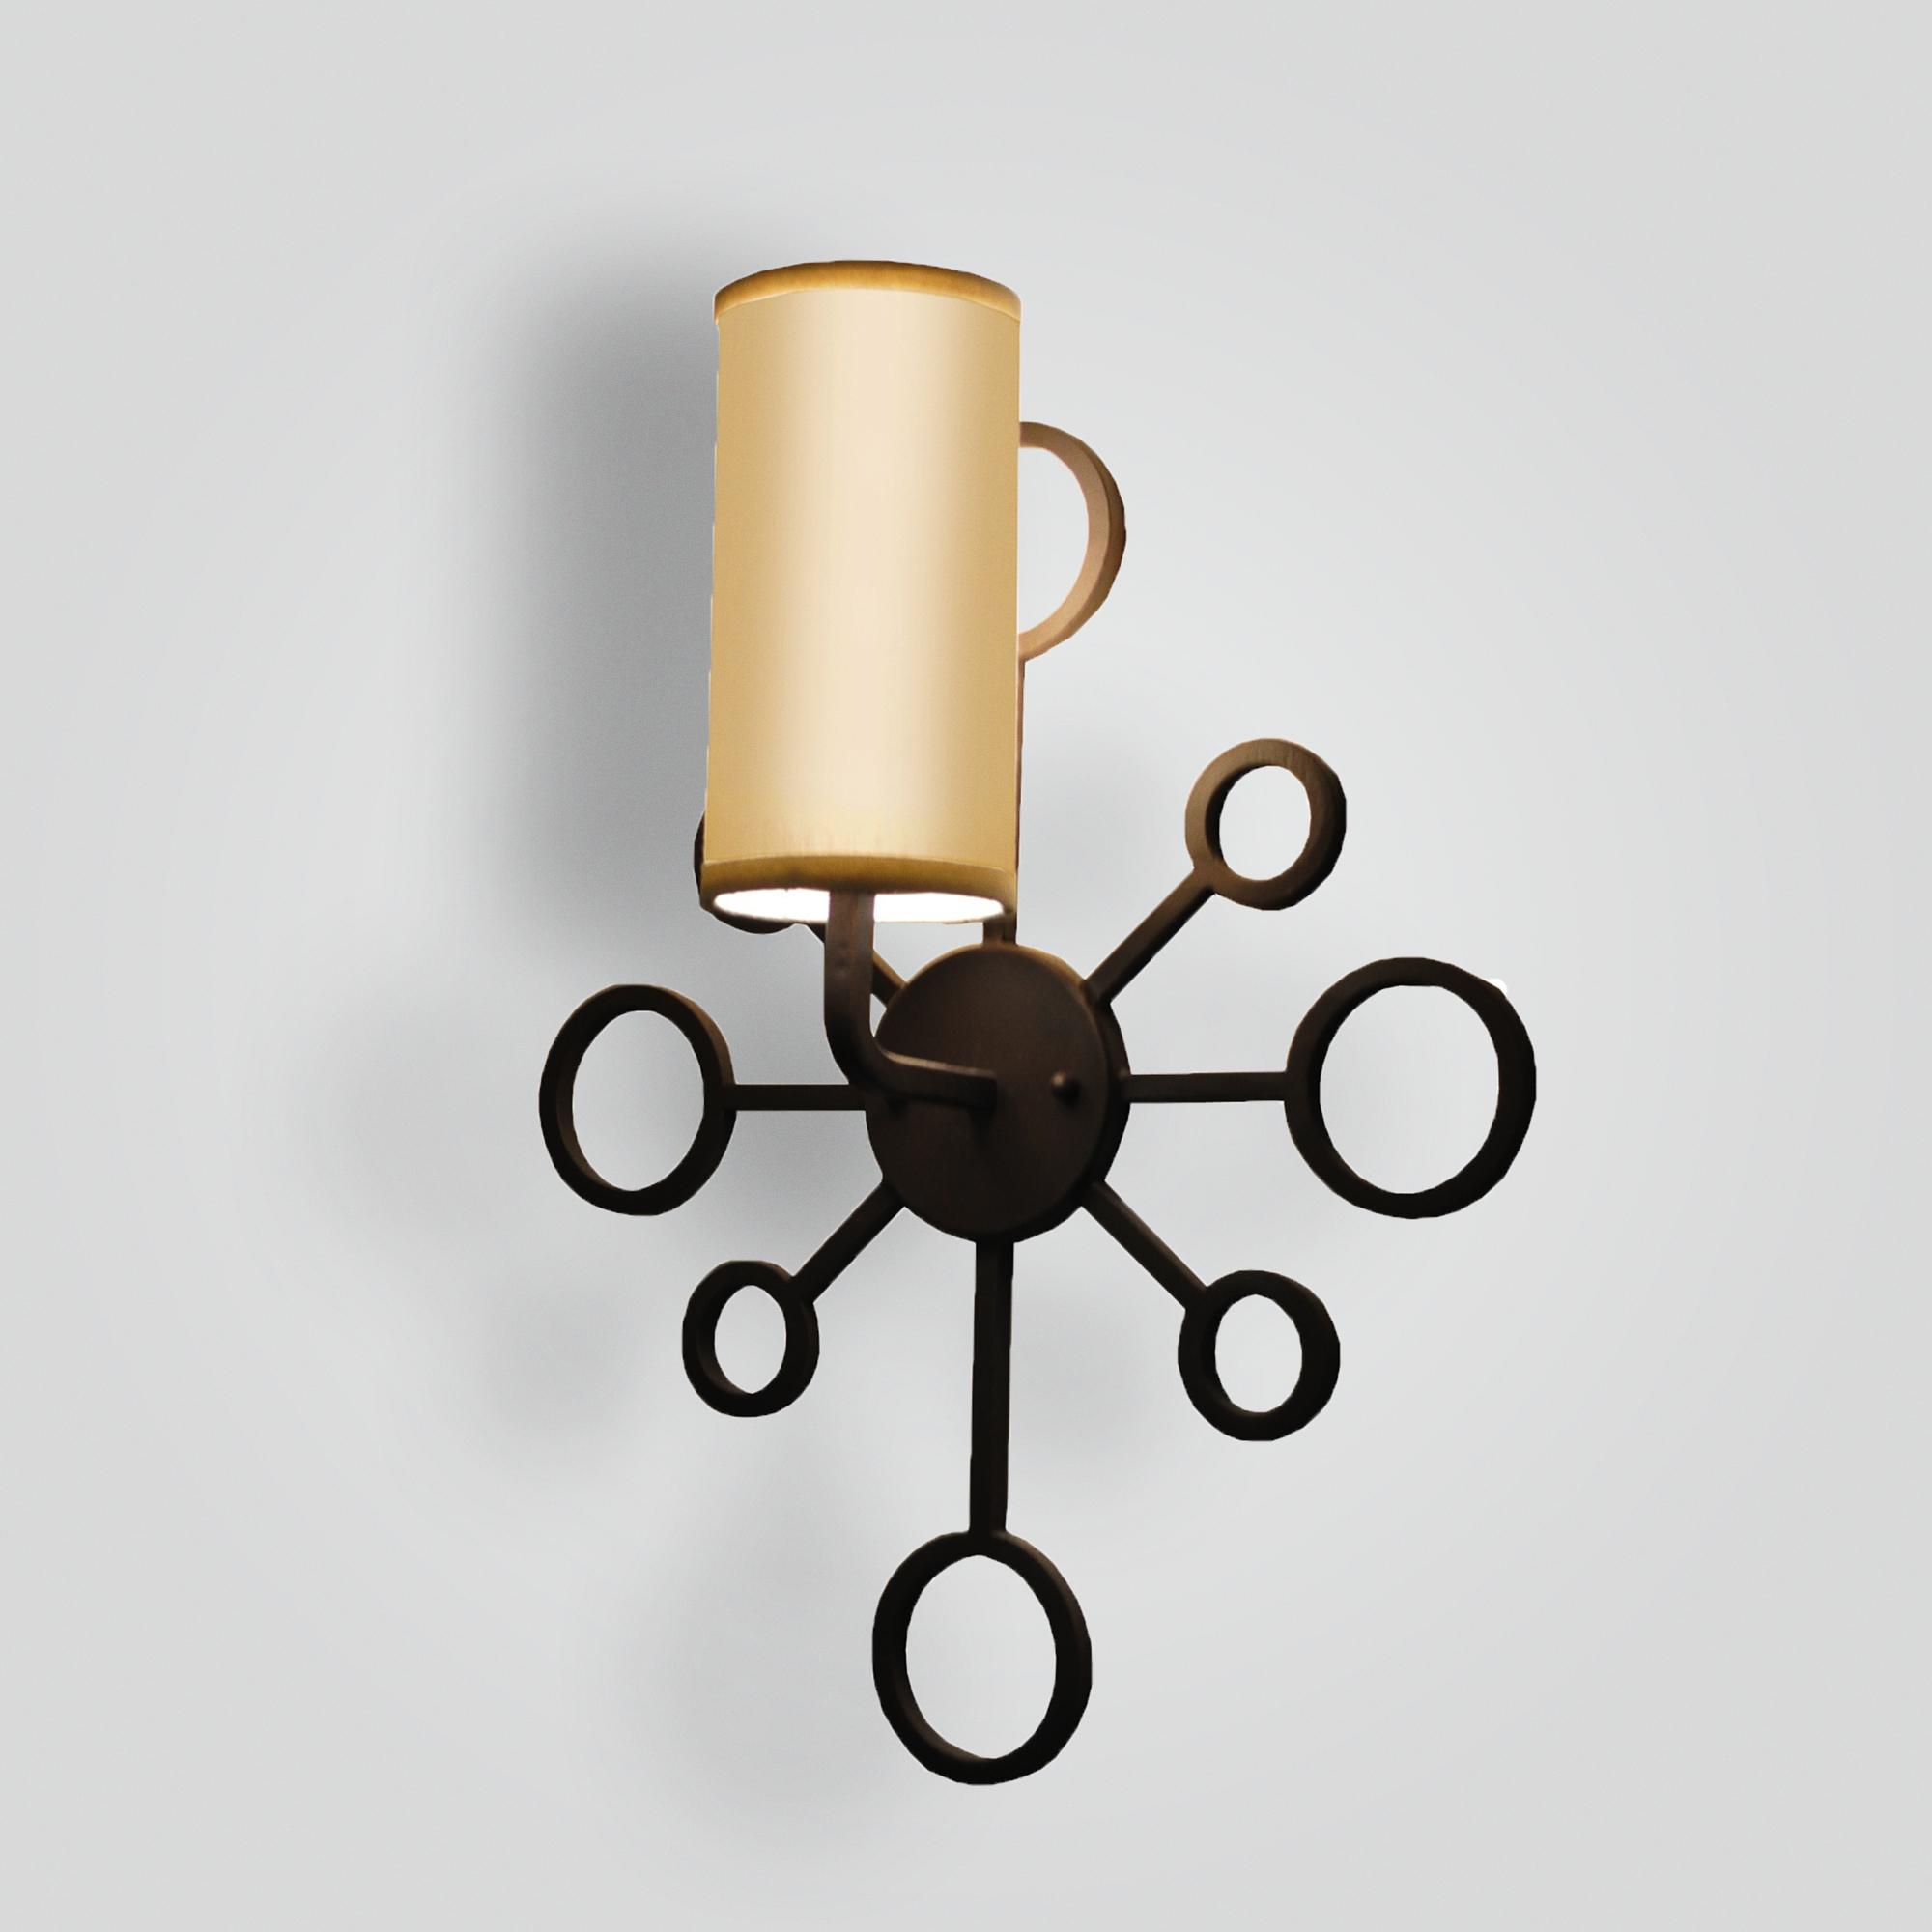 7795 Spago Wall Sconce – ADG Lighting Collection